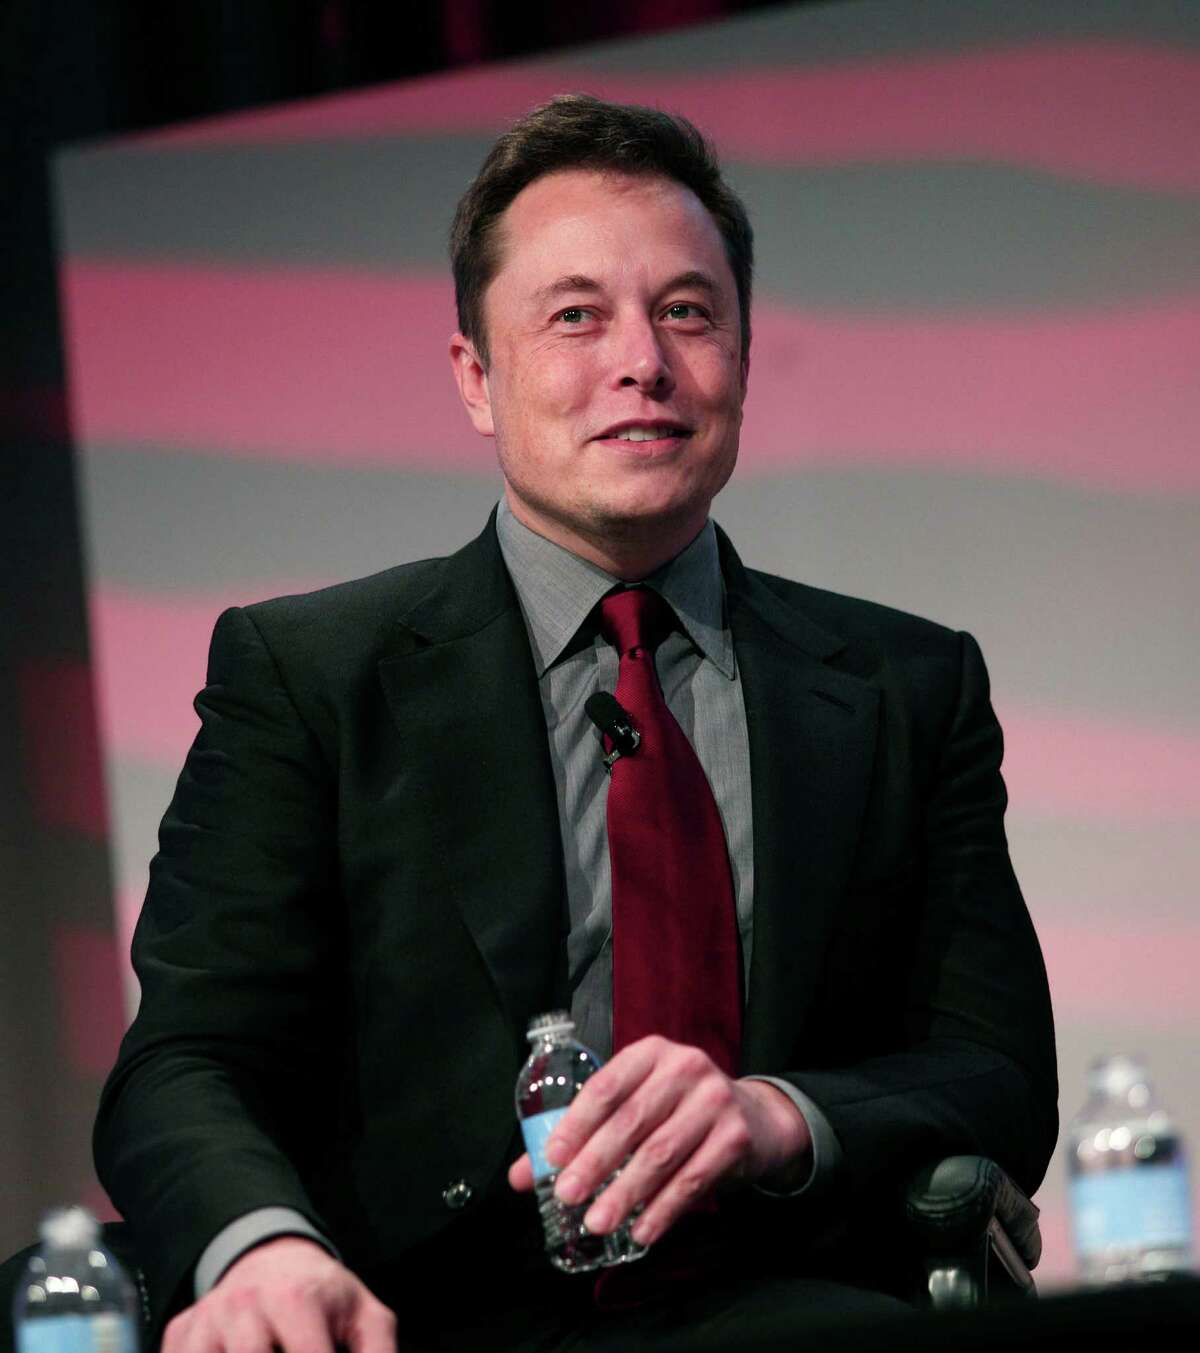 Elon Musk helped officially launch a multipronged Tesla blitz on the Legislature to try to get lawmakers to change a Texas law that requires new cars to be sold exclusively through franchised dealerships.